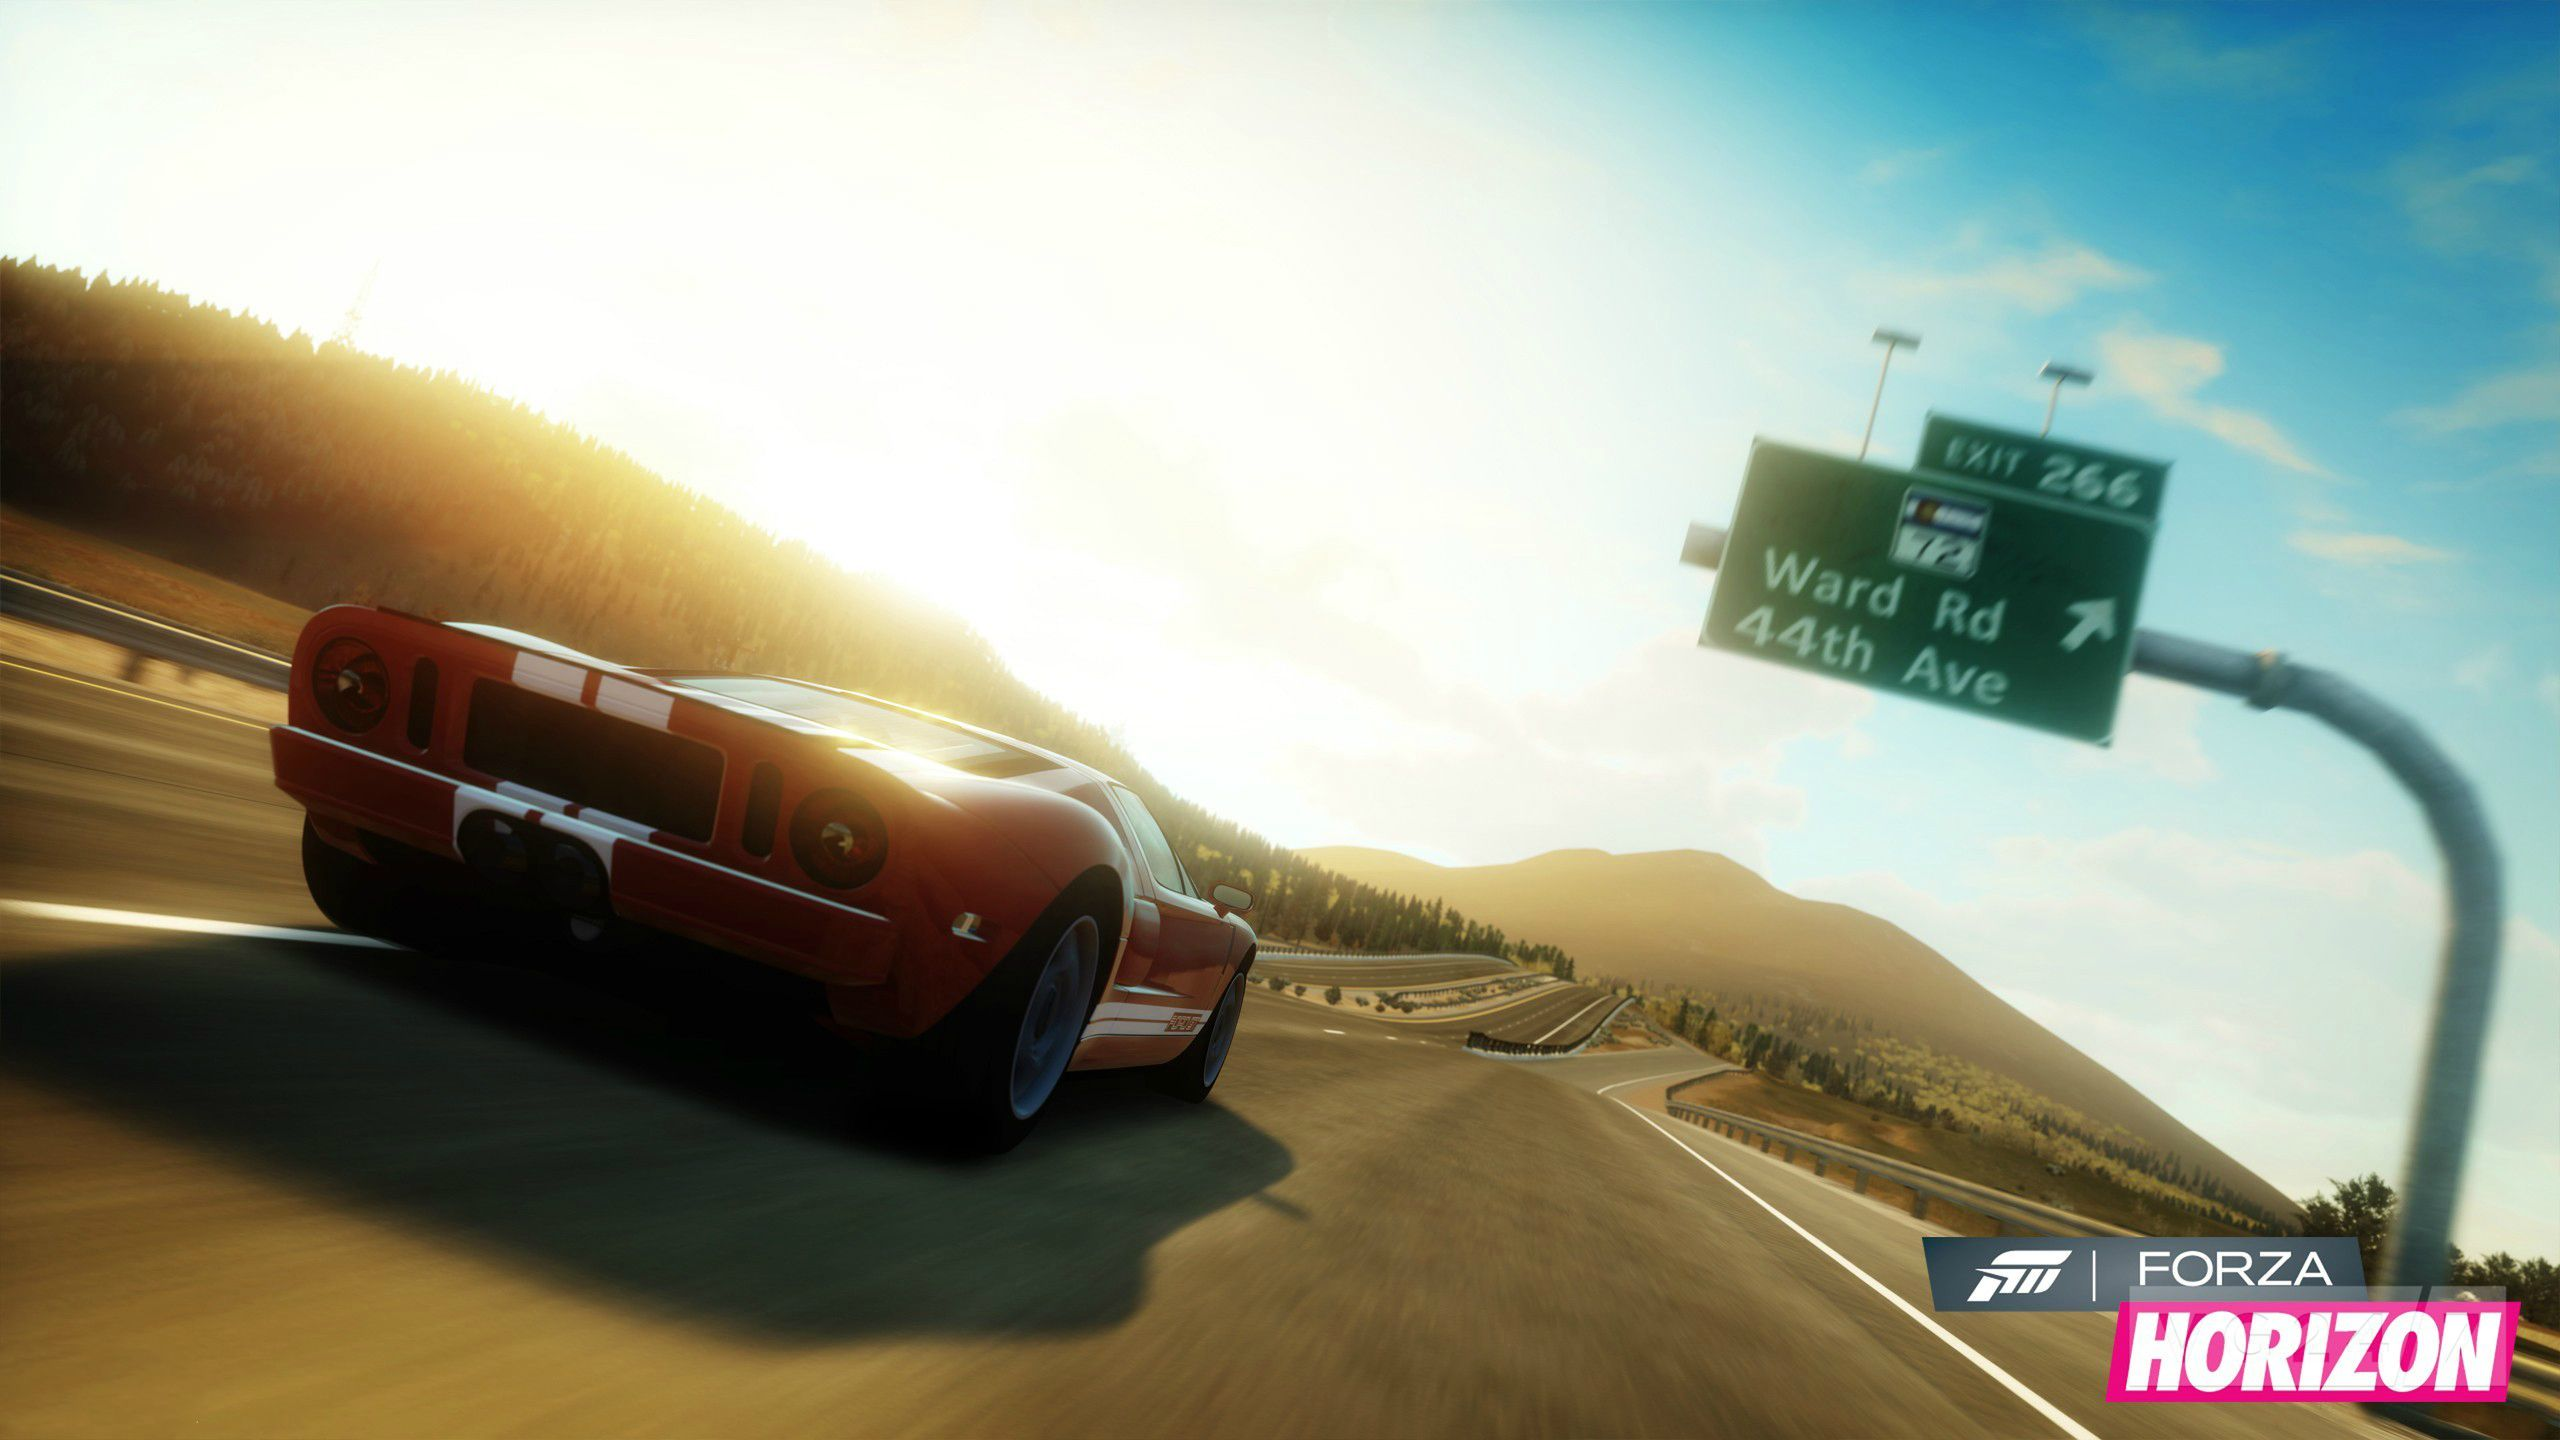 Forza Horizon wallpaper 4